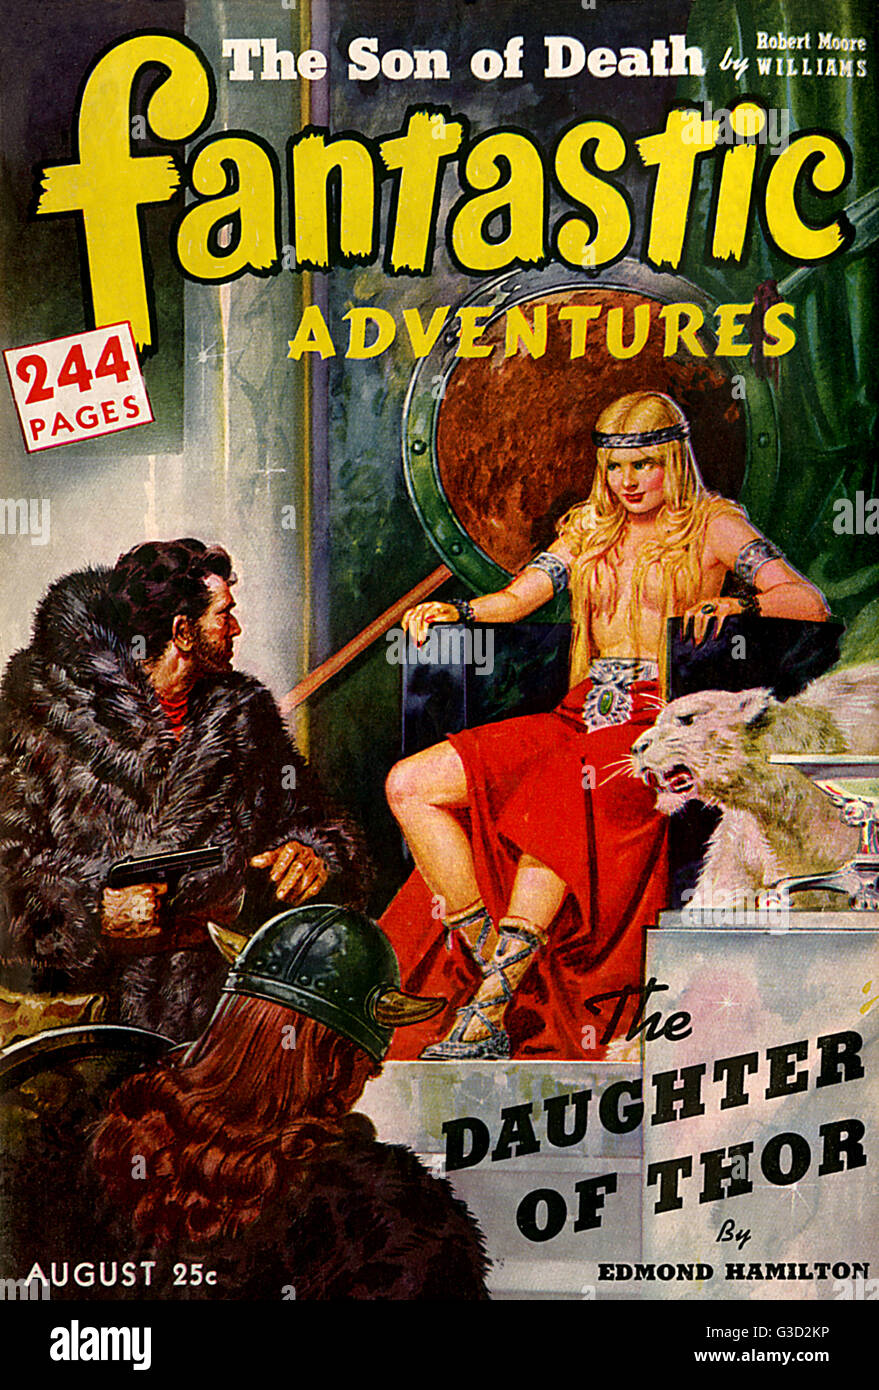 Cover of Fantastic Adventures, August 1942, featuring the story 'The Daughter of Thor' by Edmond Hamilton. - Stock Image